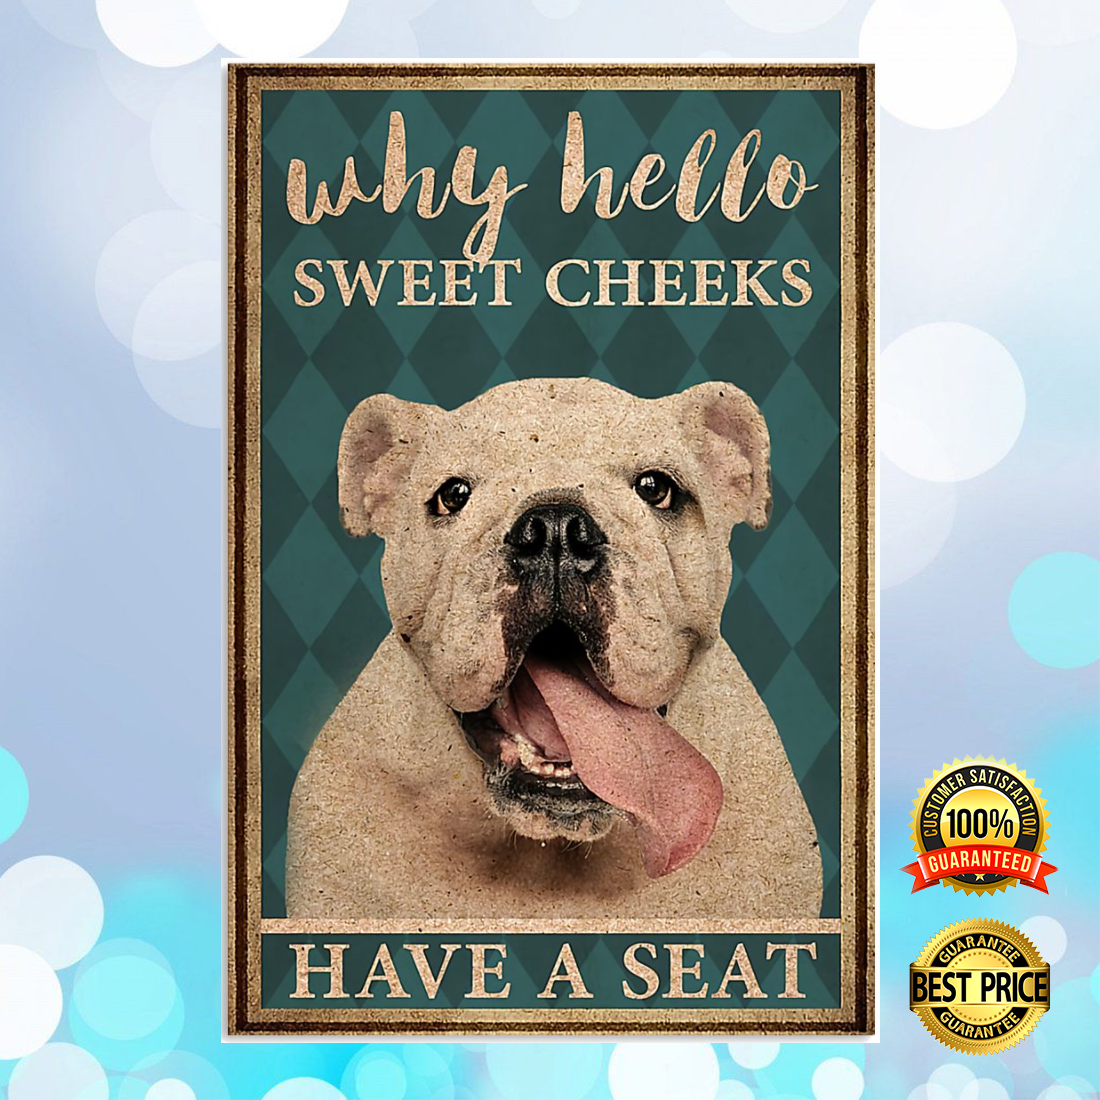 BULLDOG WHY HELLO SWEET CHEEKS HAVE A SEAT POSTER 7